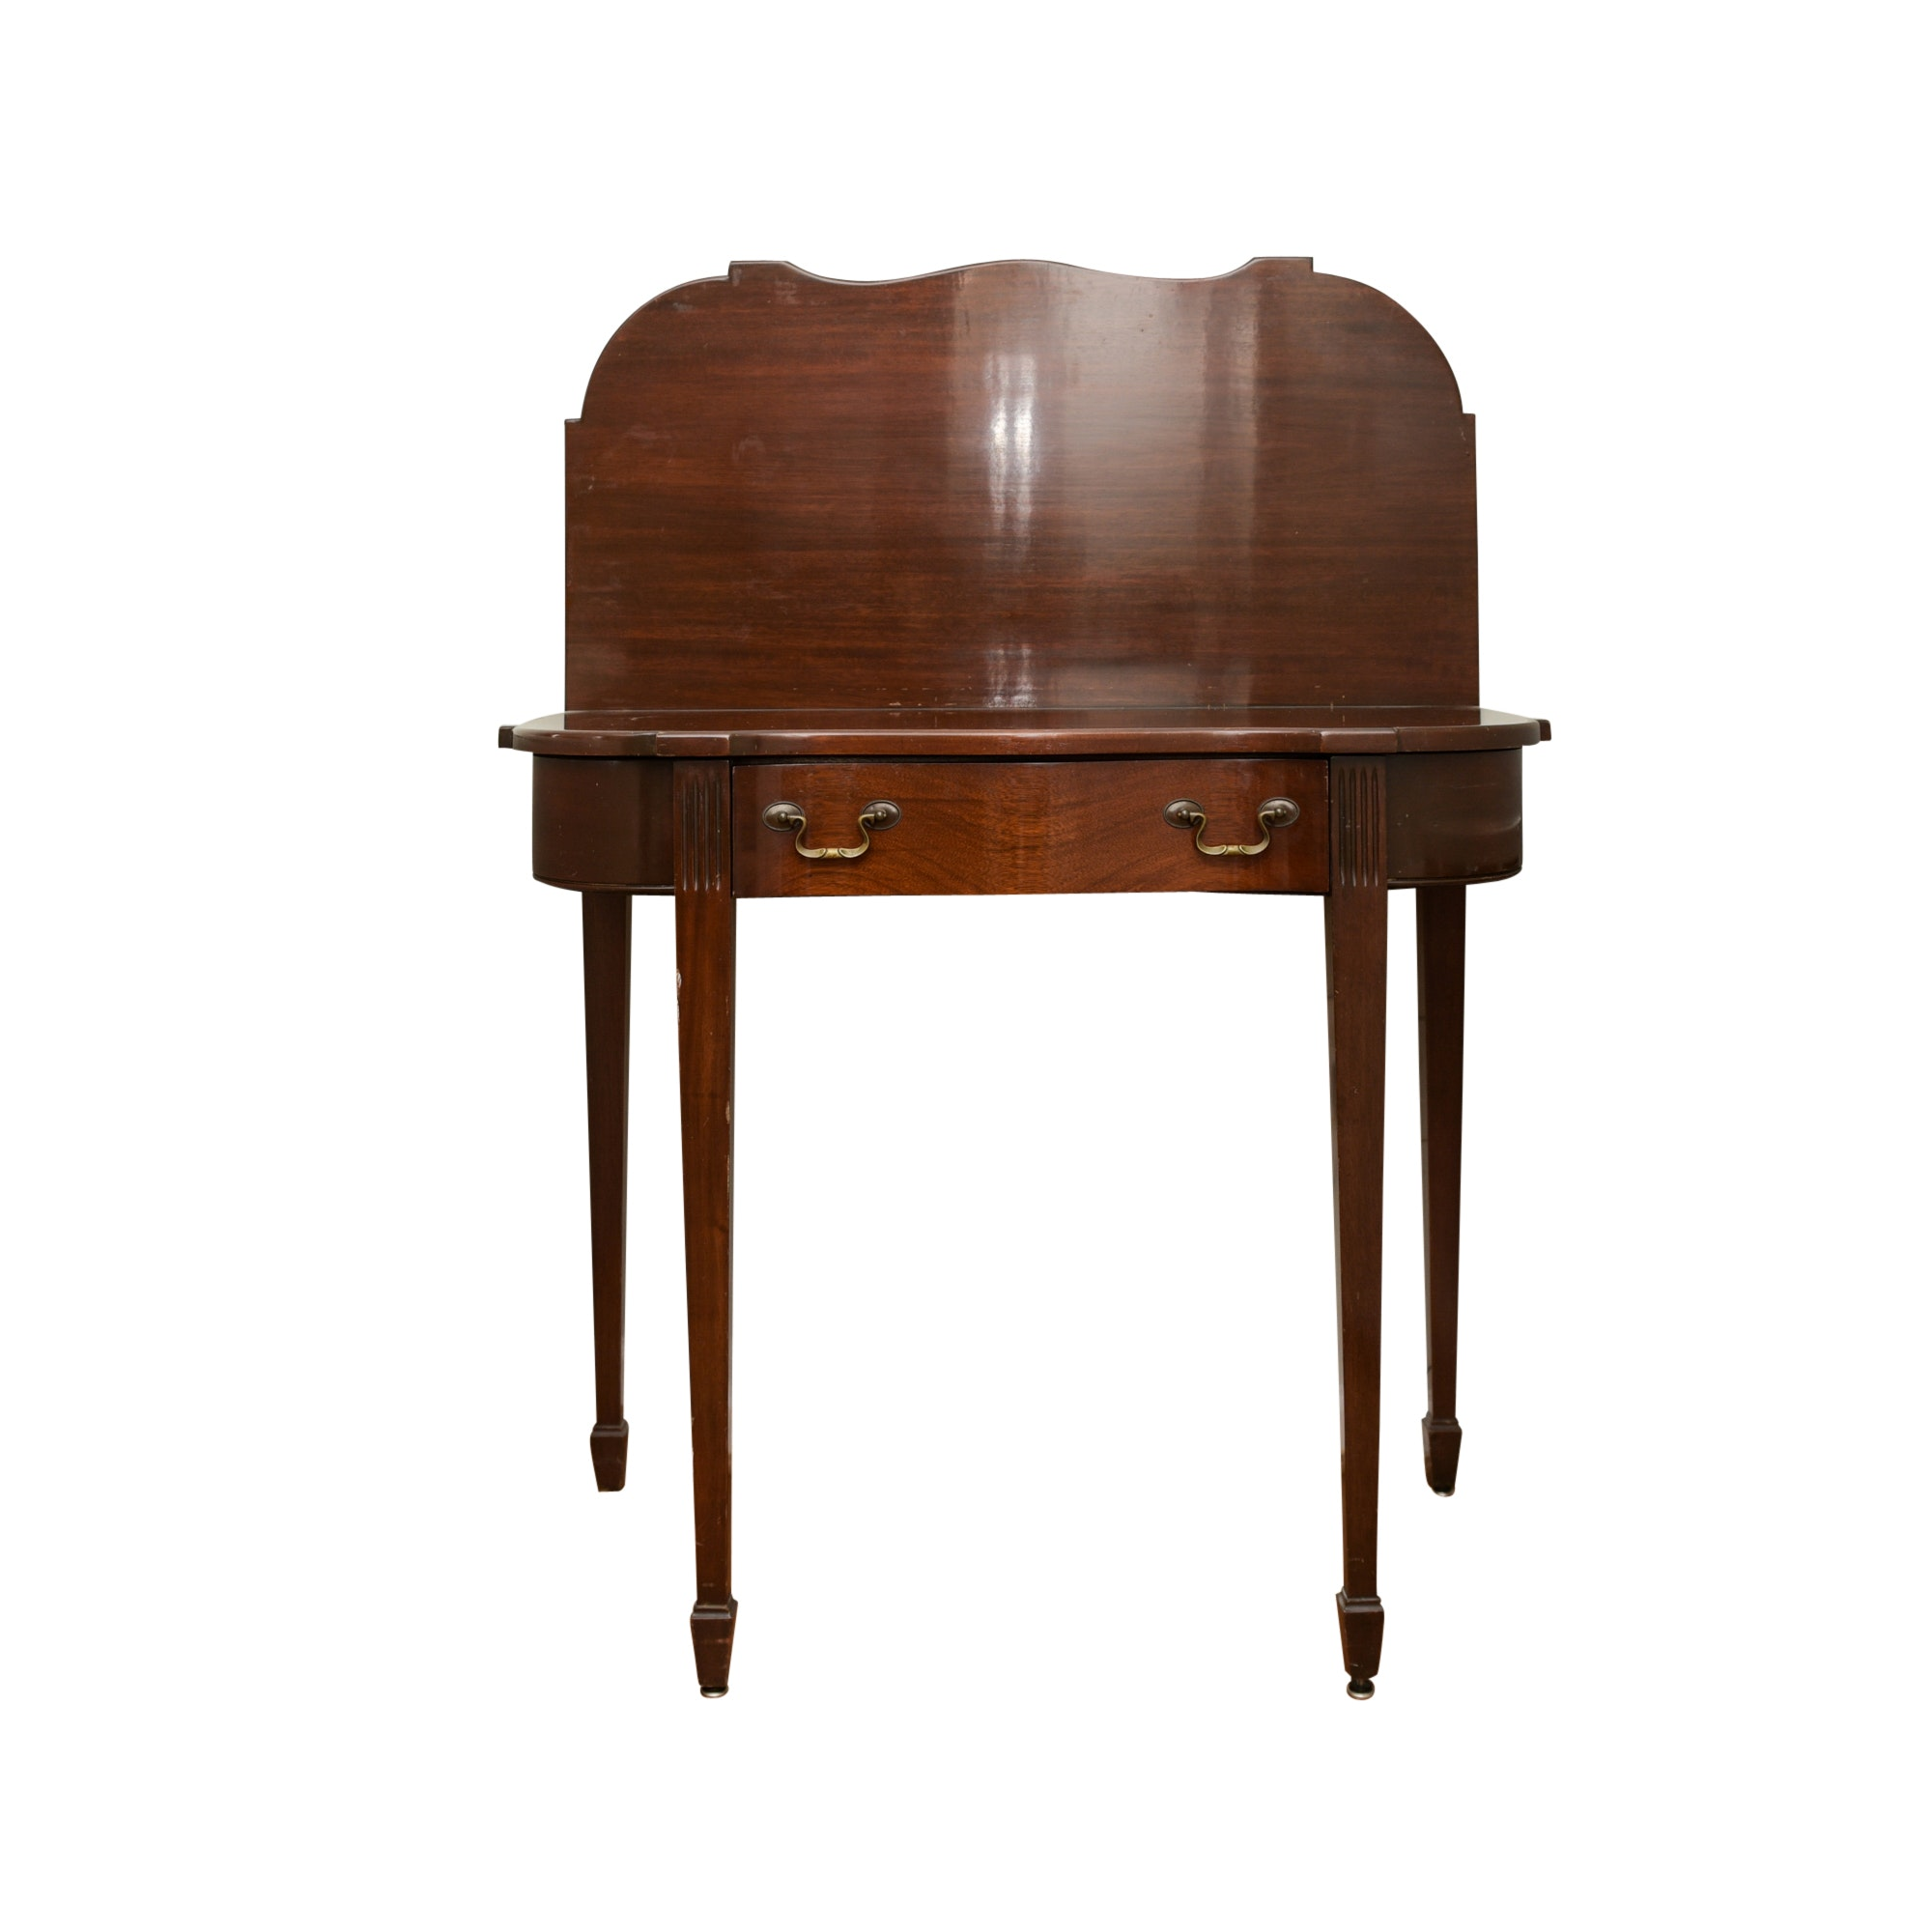 Vintage Hepplewhite Style Card Table with Drawer